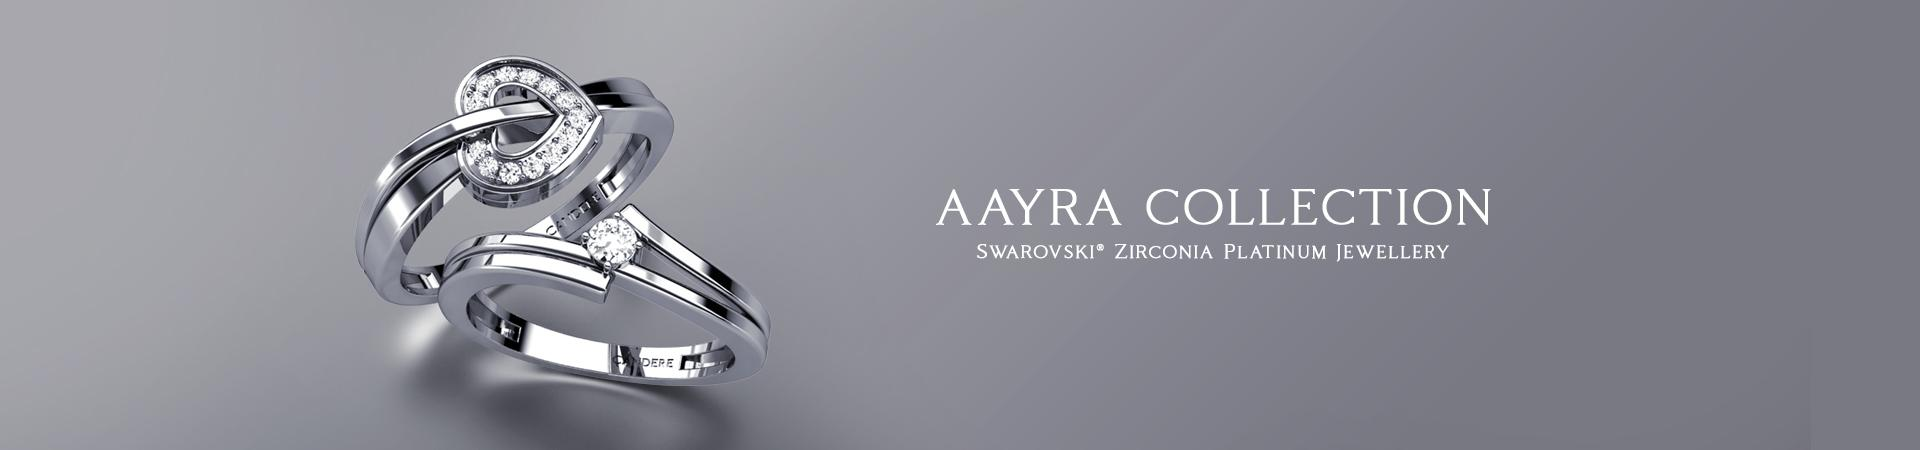 AAYRA COLLECTION